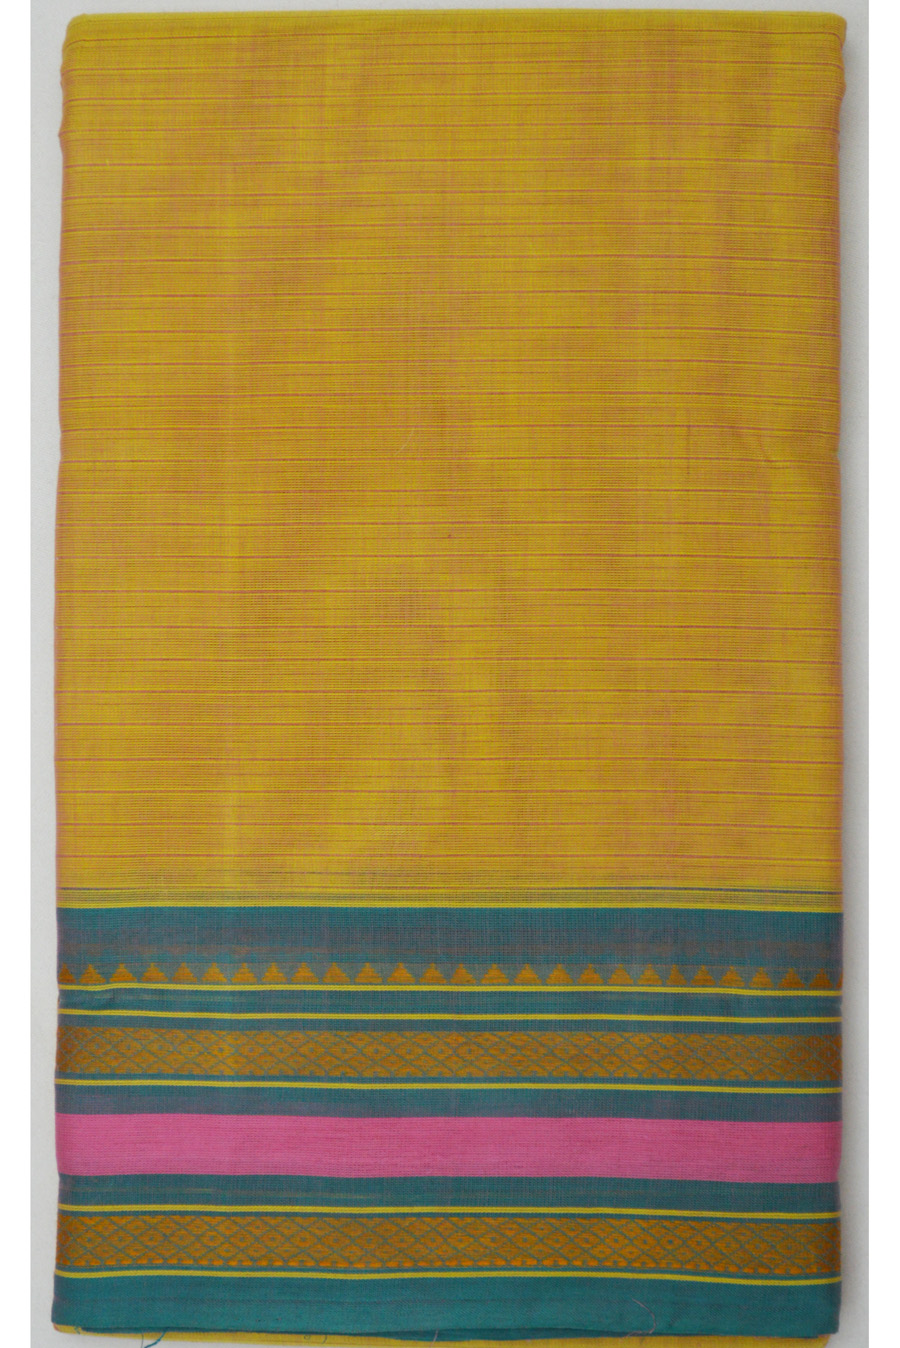 Kanchi Cotton 2739